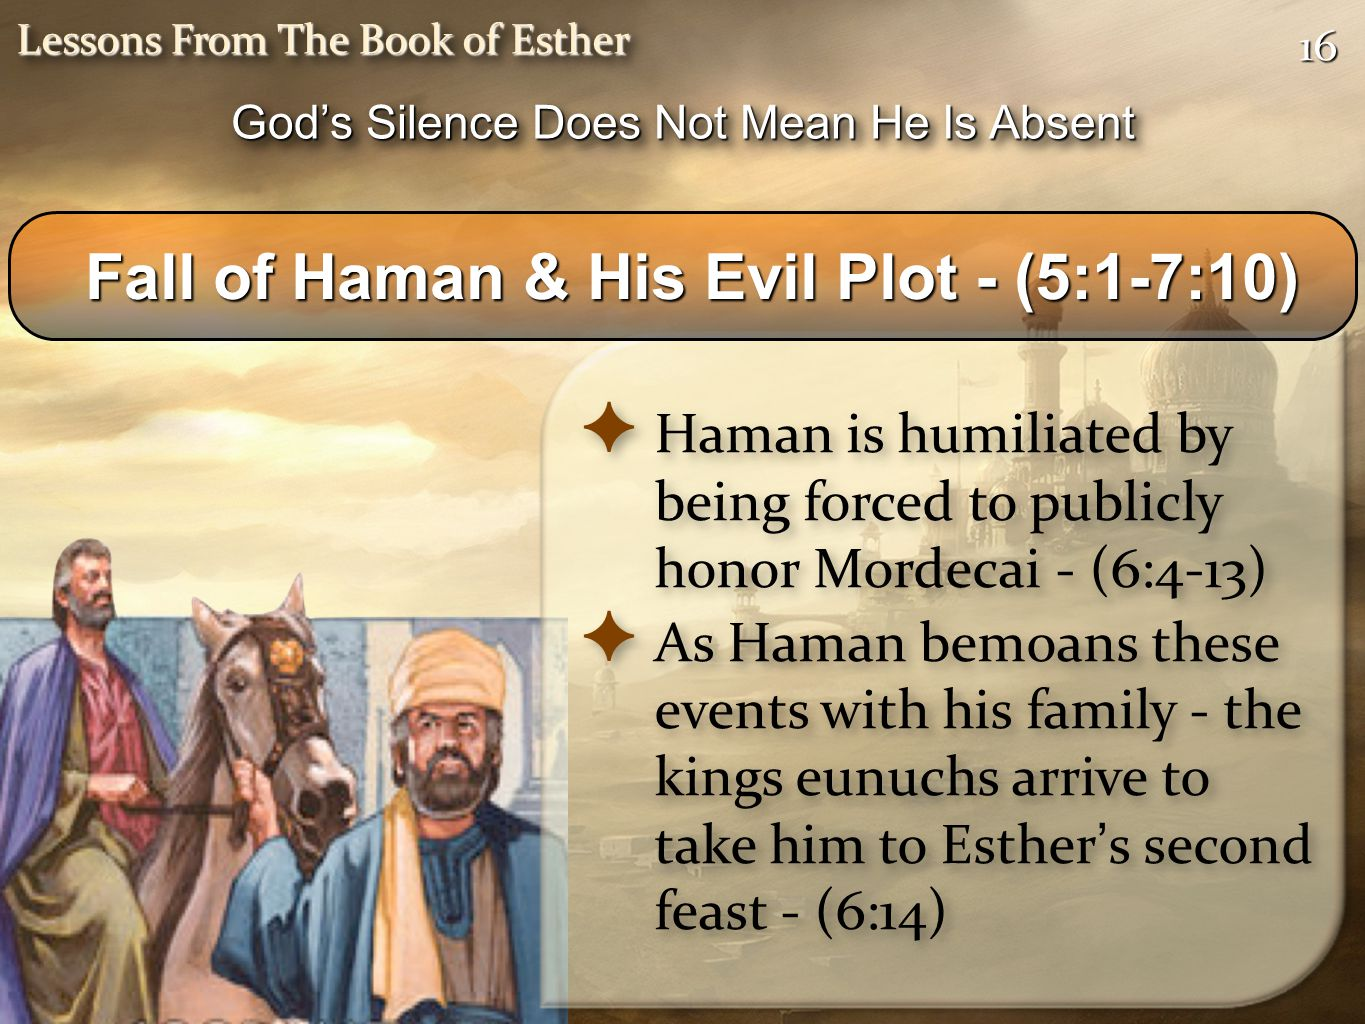 1616 Lessons From The Book of Esther ✦ Haman is humiliated by being forced to publicly honor Mordecai - (6:4-13) ✦ As Haman bemoans these events with his family - the kings eunuchs arrive to take him to Esther ' s second feast - (6:14) ✦ Haman is humiliated by being forced to publicly honor Mordecai - (6:4-13) ✦ As Haman bemoans these events with his family - the kings eunuchs arrive to take him to Esther ' s second feast - (6:14) Fall of Haman & His Evil Plot - (5:1-7:10) Fall of Haman & His Evil Plot - (5:1-7:10) God's Silence Does Not Mean He Is Absent